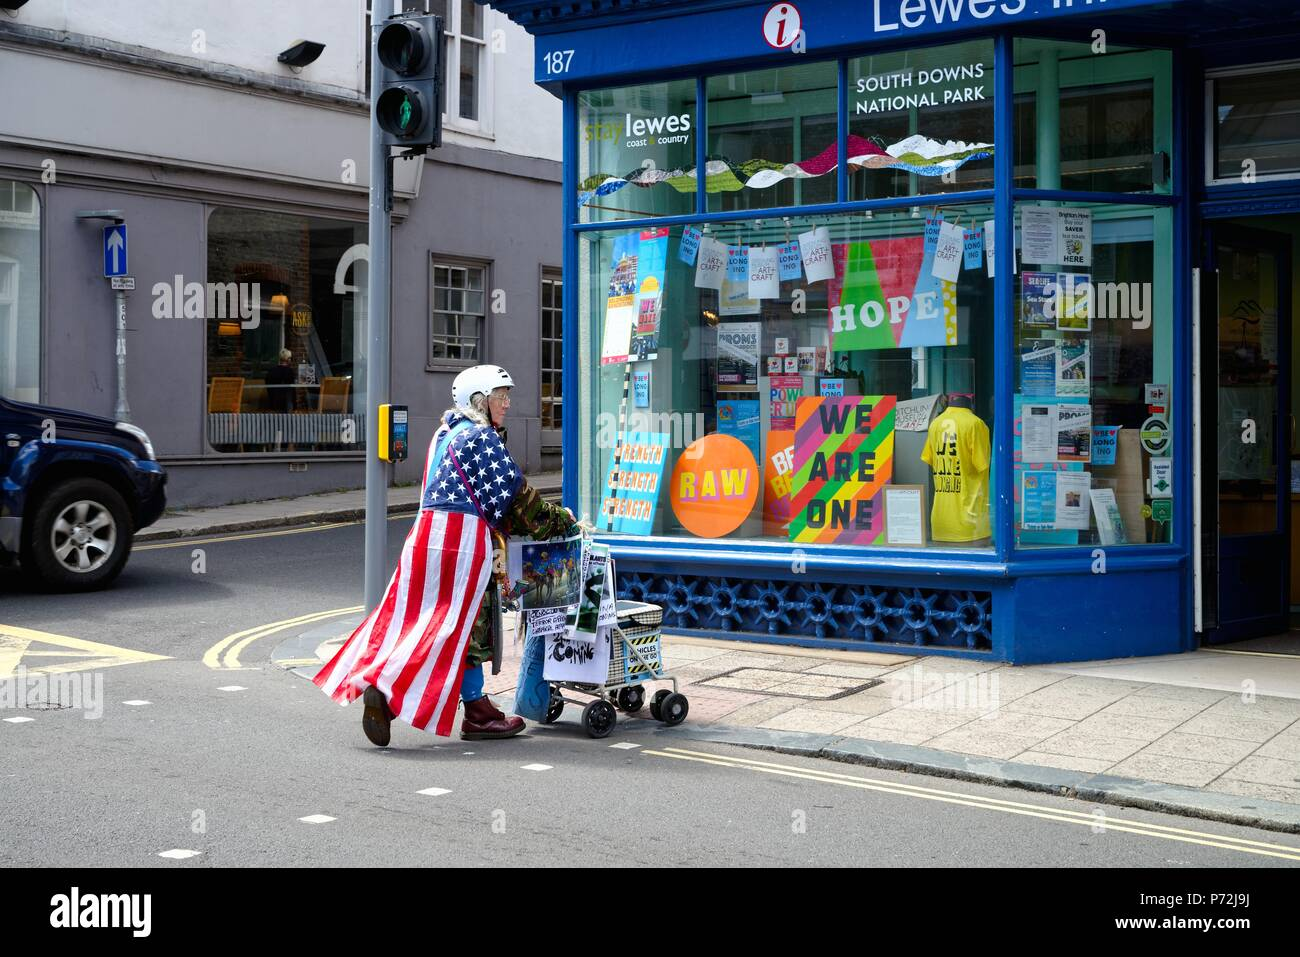 An elderly woman wearing a crash helmet and the american stars and stripes flag pushing a trolley with protest posters in Lewes high street Sussex UK - Stock Image